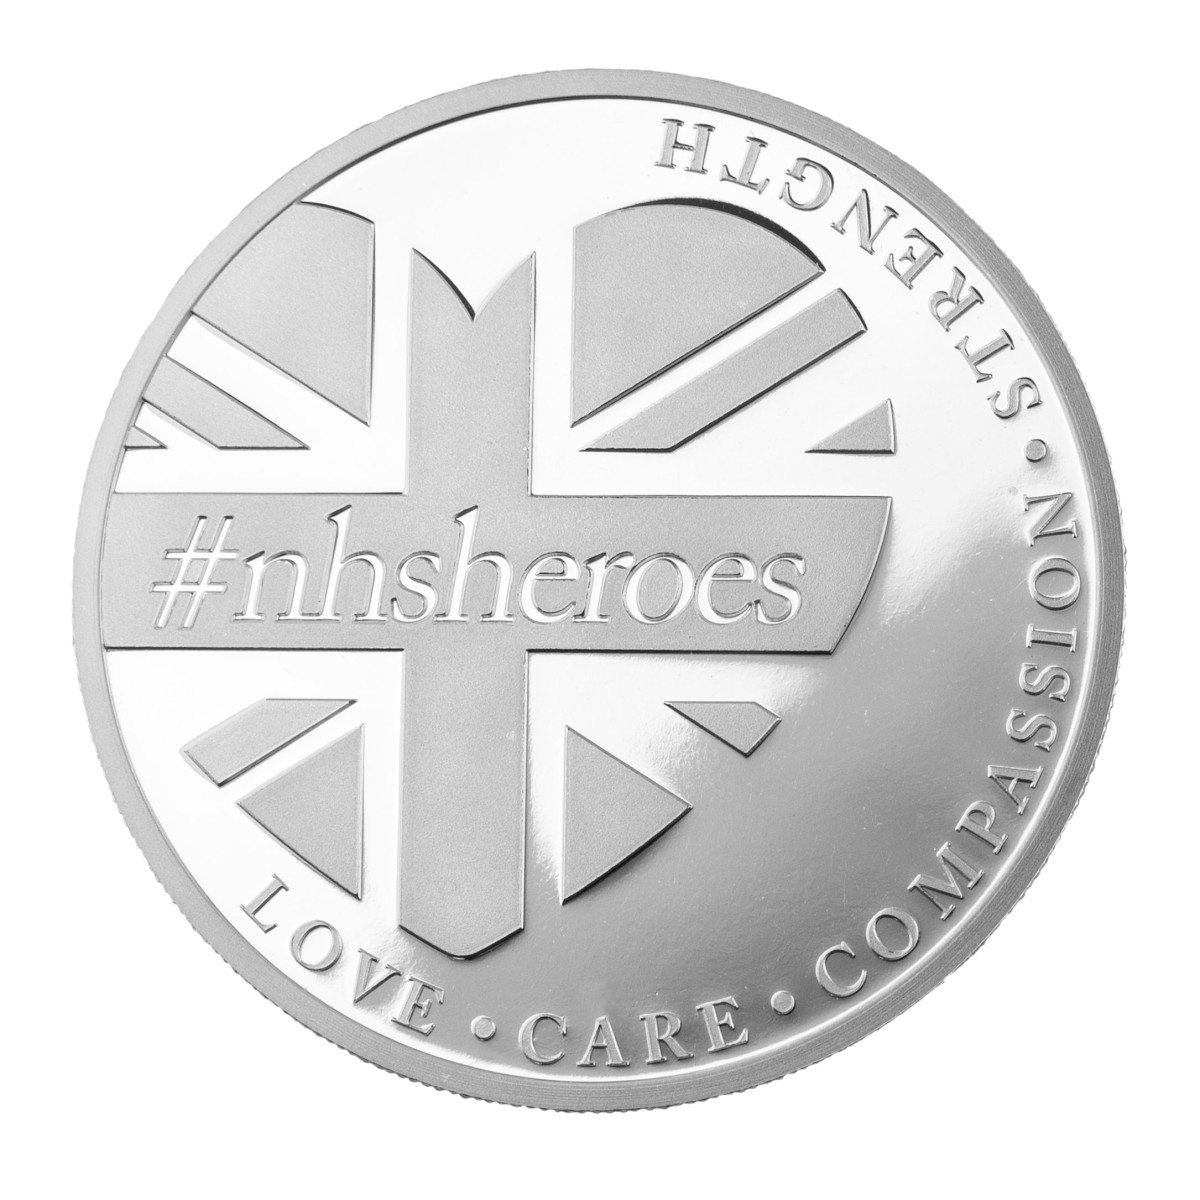 """One-hundred percent of the profit from the sales of the """"NHS Heroes"""" silver coin will benefit the NHS Charities Together Coronavirus Appeal. (The East India Company Bullion Ltd.)"""